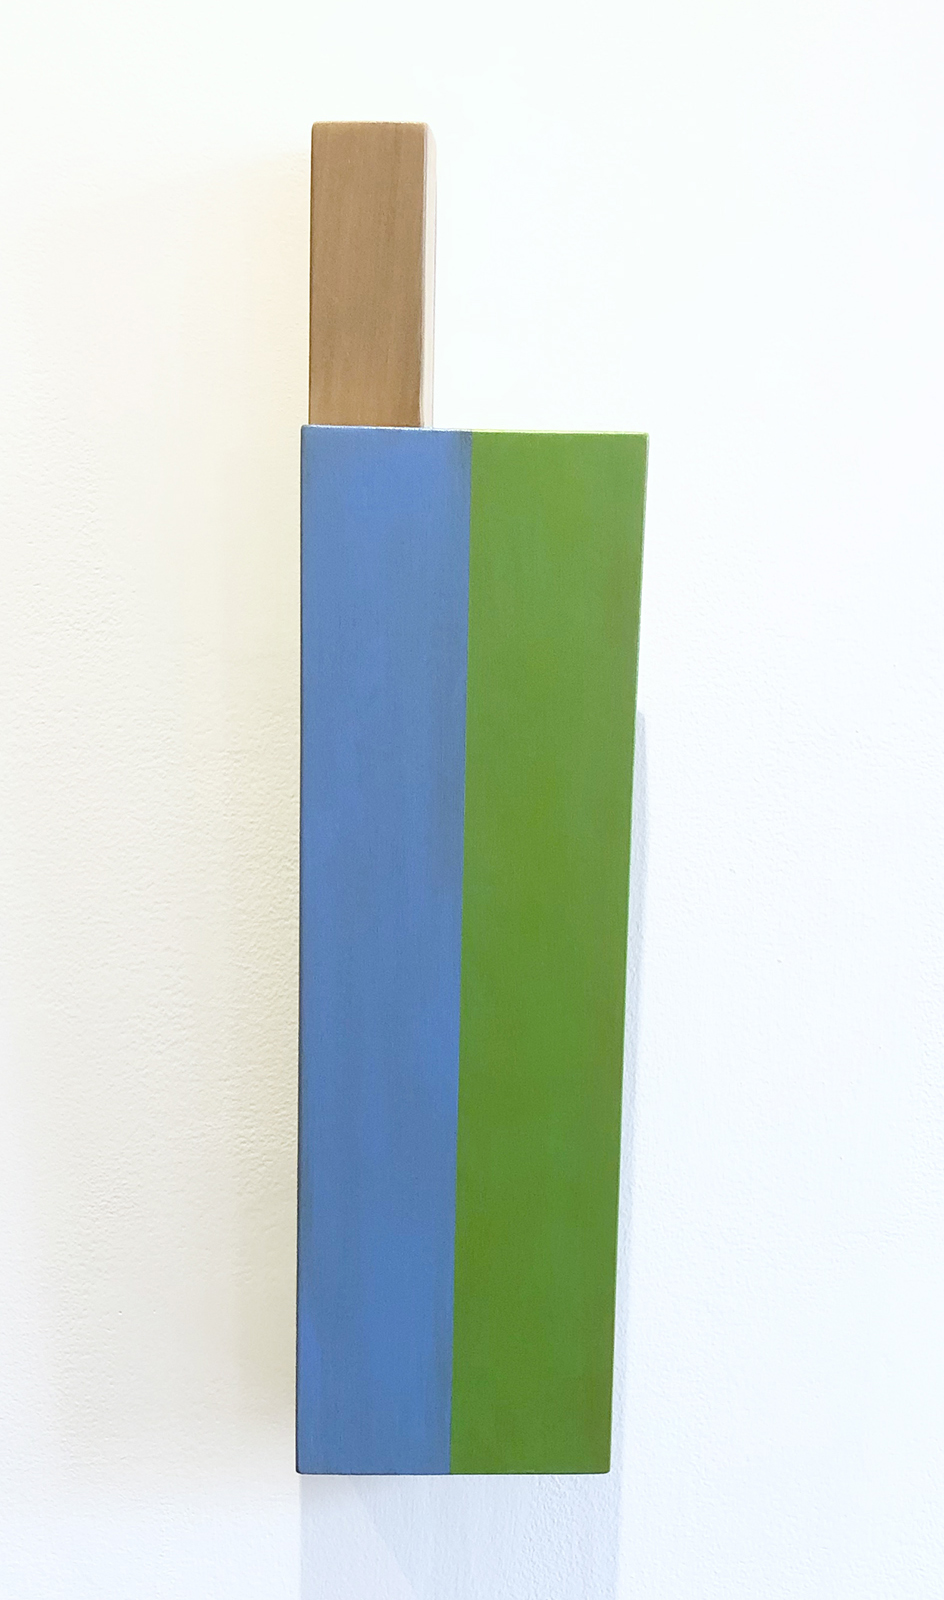 Not Allowed to Take Kings #3, 24 x 5.875 x 3.5 inches / 61.5 x 15 x 9 cm, acrylic on poplar and maple, 2019